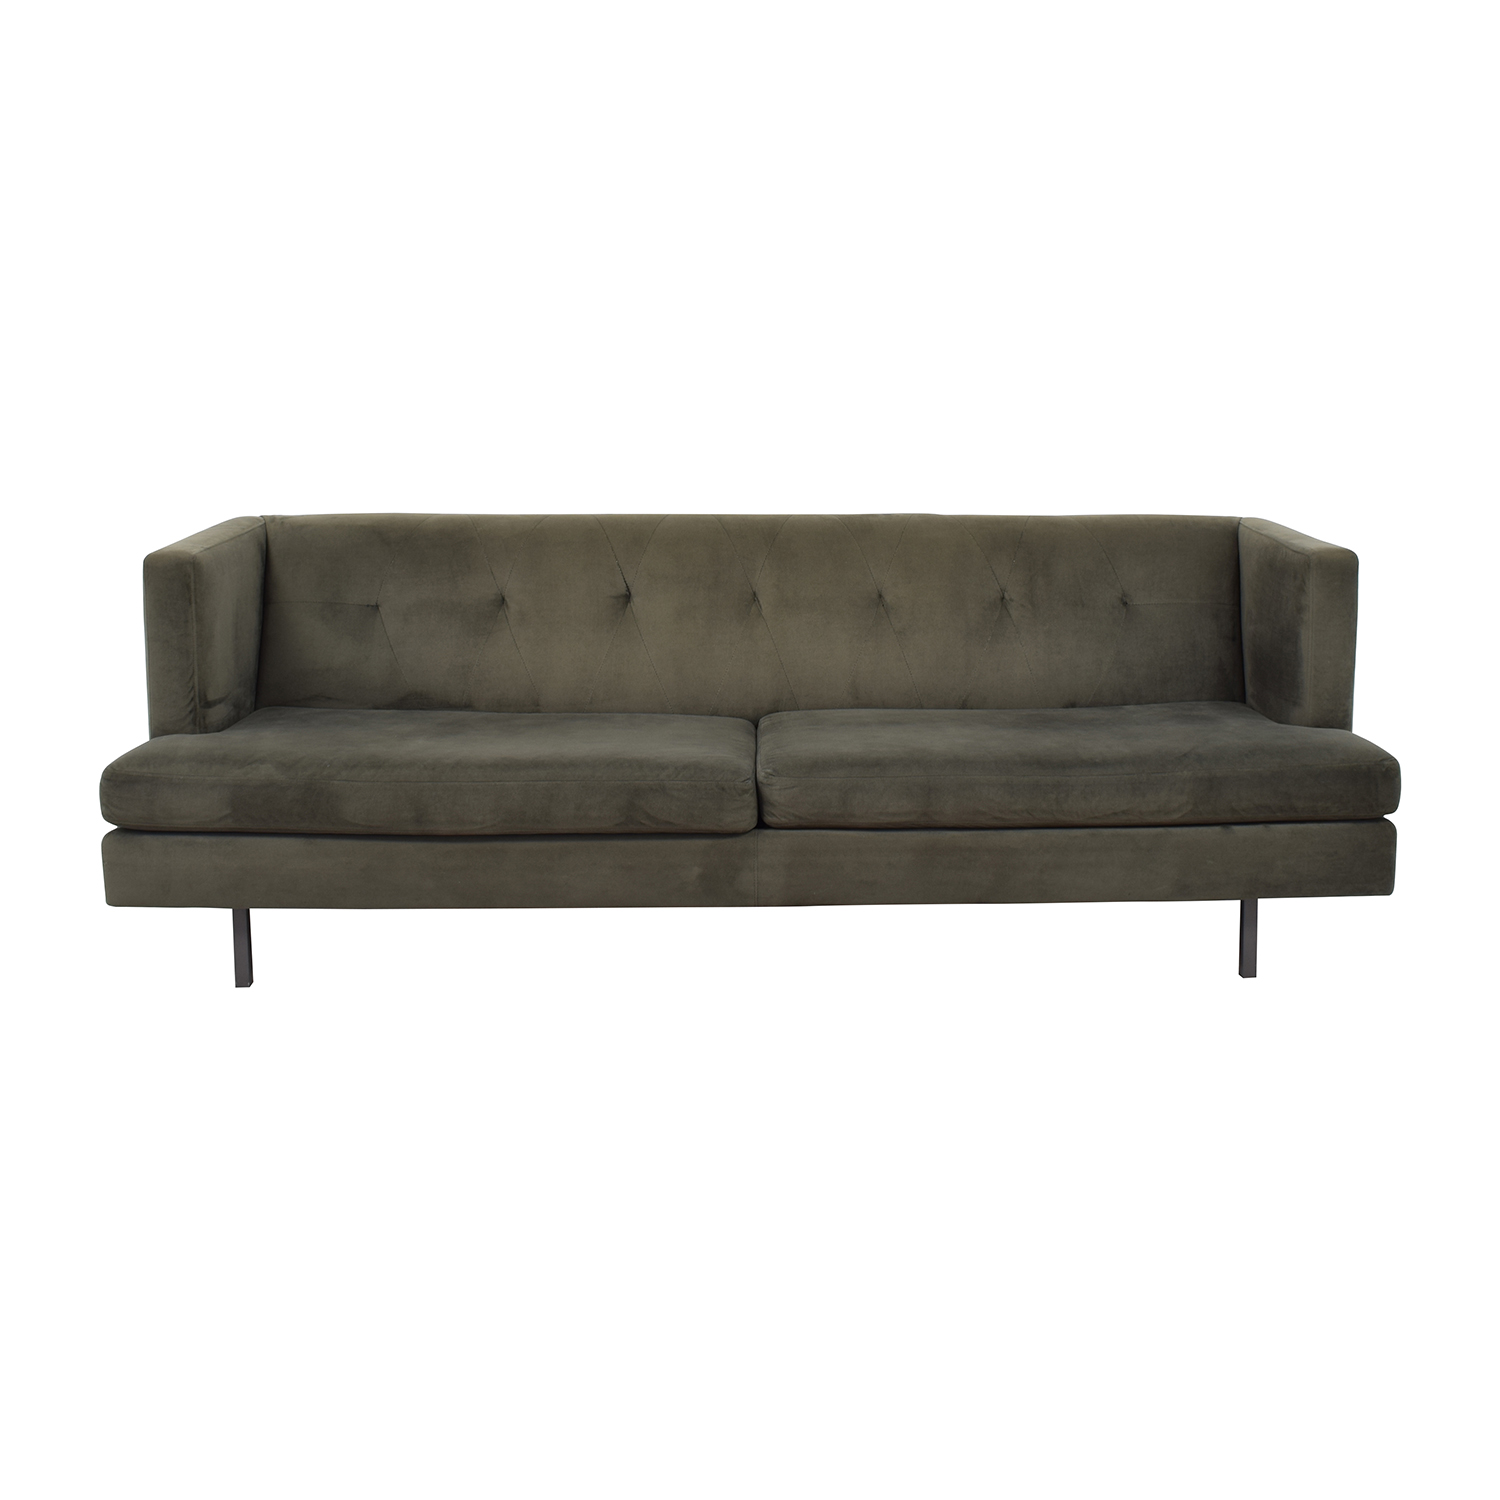 CB2 Avec Grey Sofa with Brushed Stainless Steel Legs / Classic Sofas